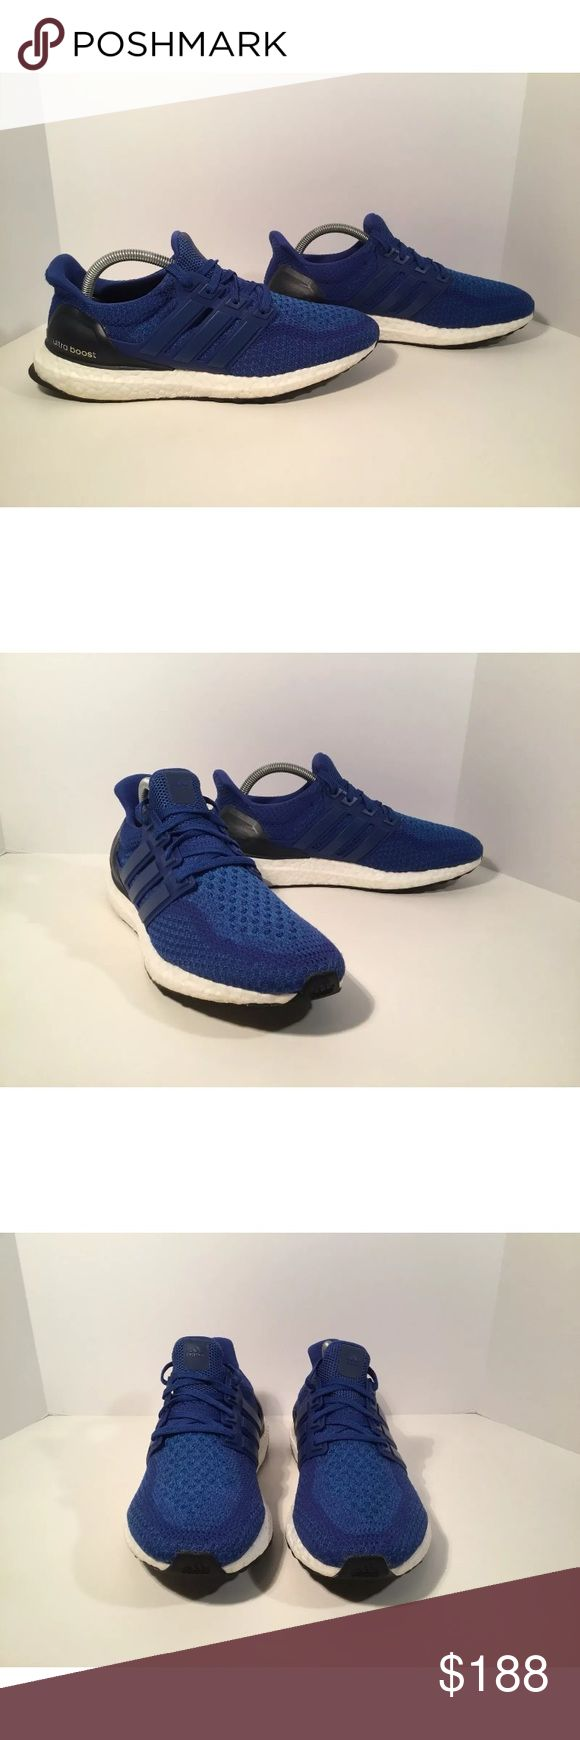 Adidas Ultra Boost 2.0 Item details:   -adidas brand  -in good condition  -Men's Size 8  -Ultra Boost 2.0   All my shoes are 100% authentic. Buyer satisfaction is very important to me and I will always do my best to make sure you have a good experience when purchasing my items. I sell many hard to find, past season, and popular shoes at discount prices. If I have the box for the shoes, I always include it in the pictures. adidas Shoes Athletic Shoes